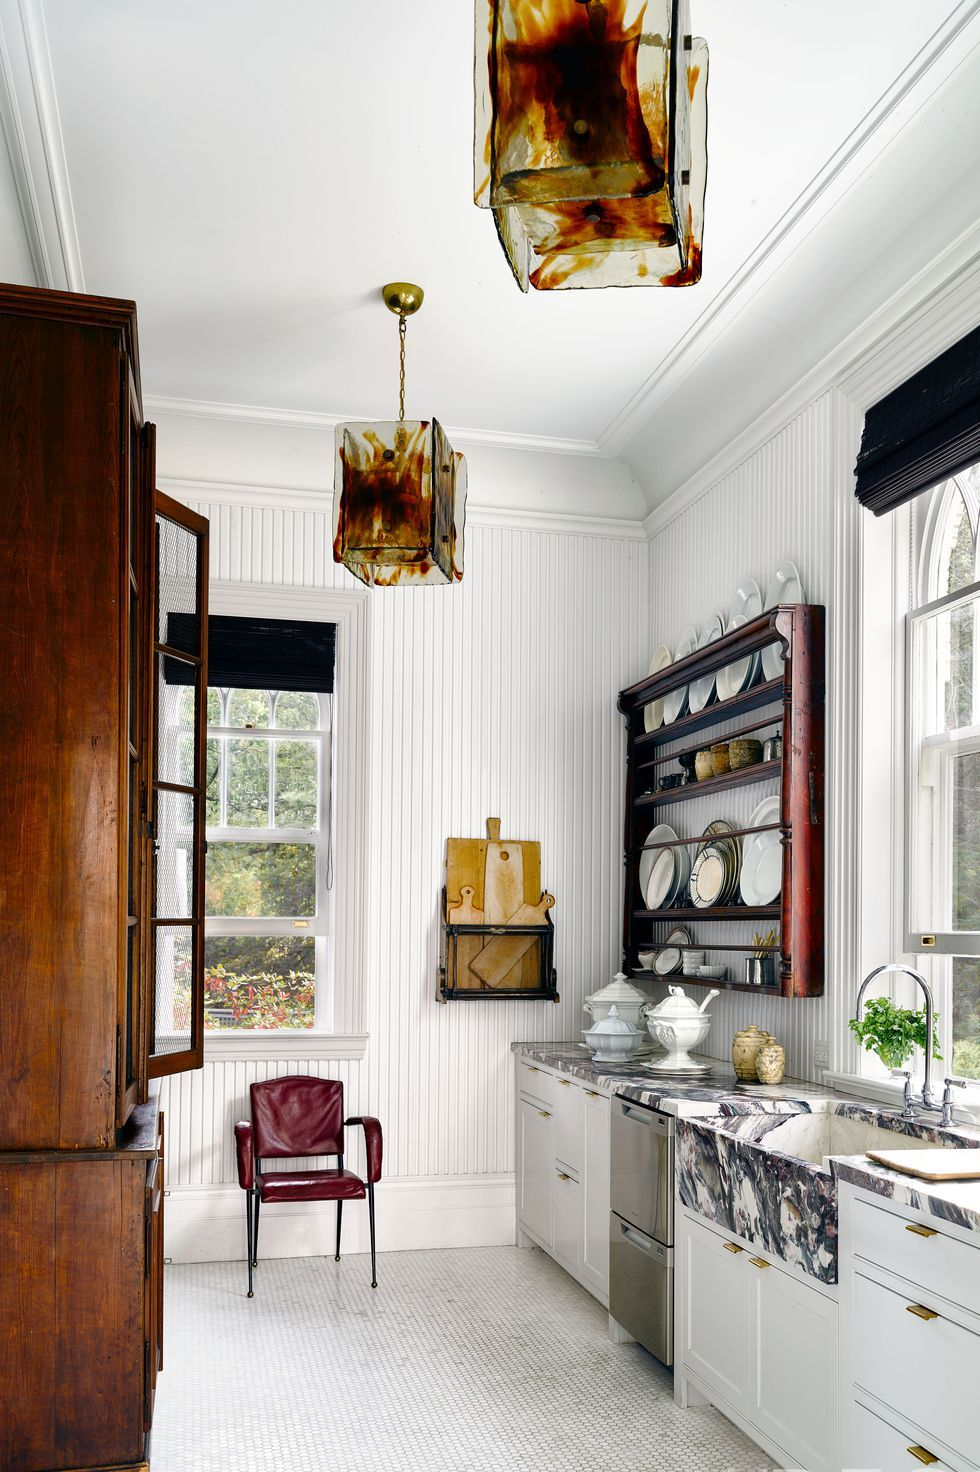 Simple kitchen designs photo gallery Shape Small Kitchen Designs Elle Decor Best Small Kitchen Designs Design Ideas For Tiny Kitchens